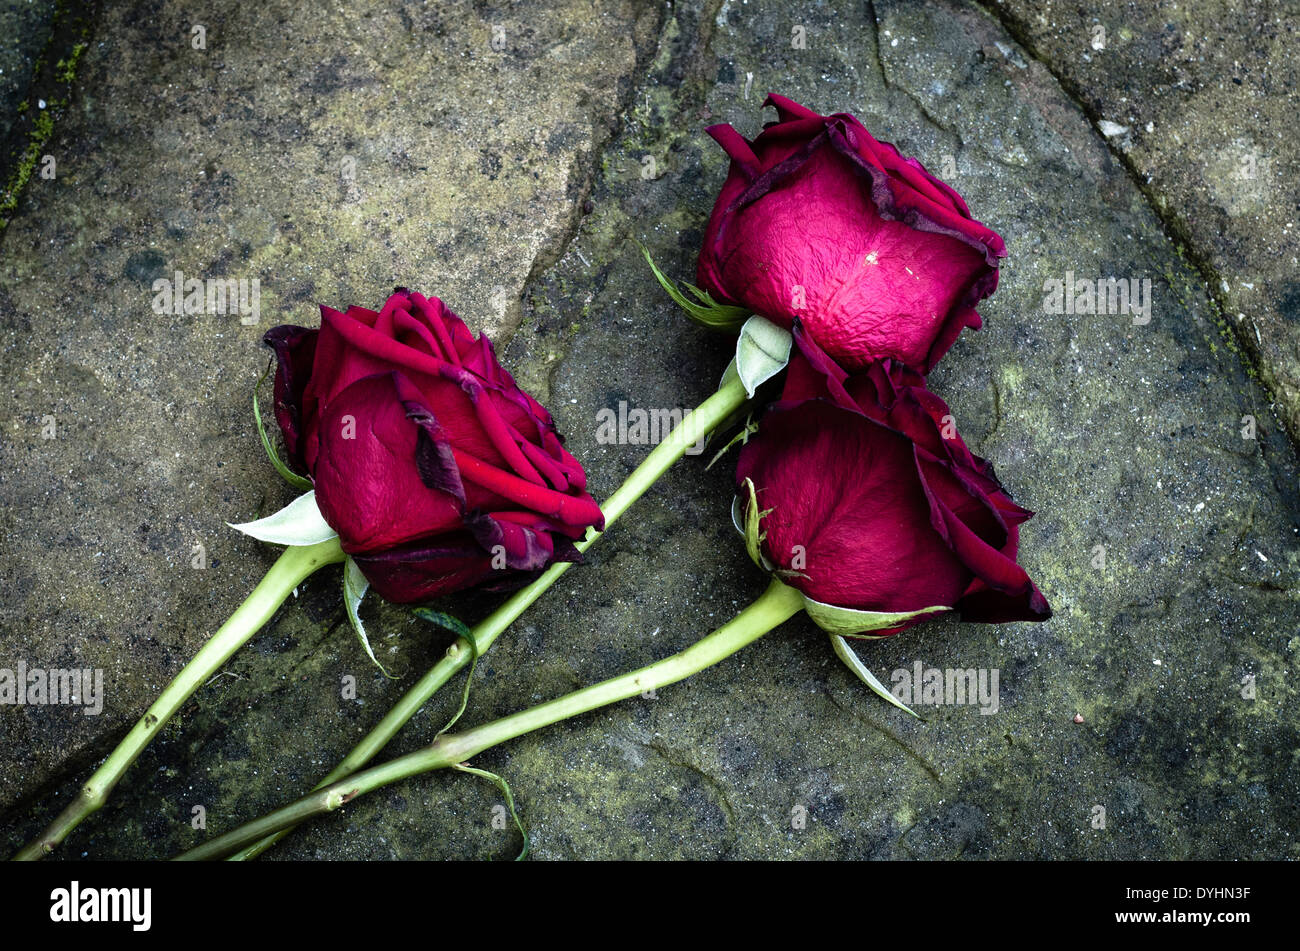 Dying Roses dropped on the floor. - Stock Image